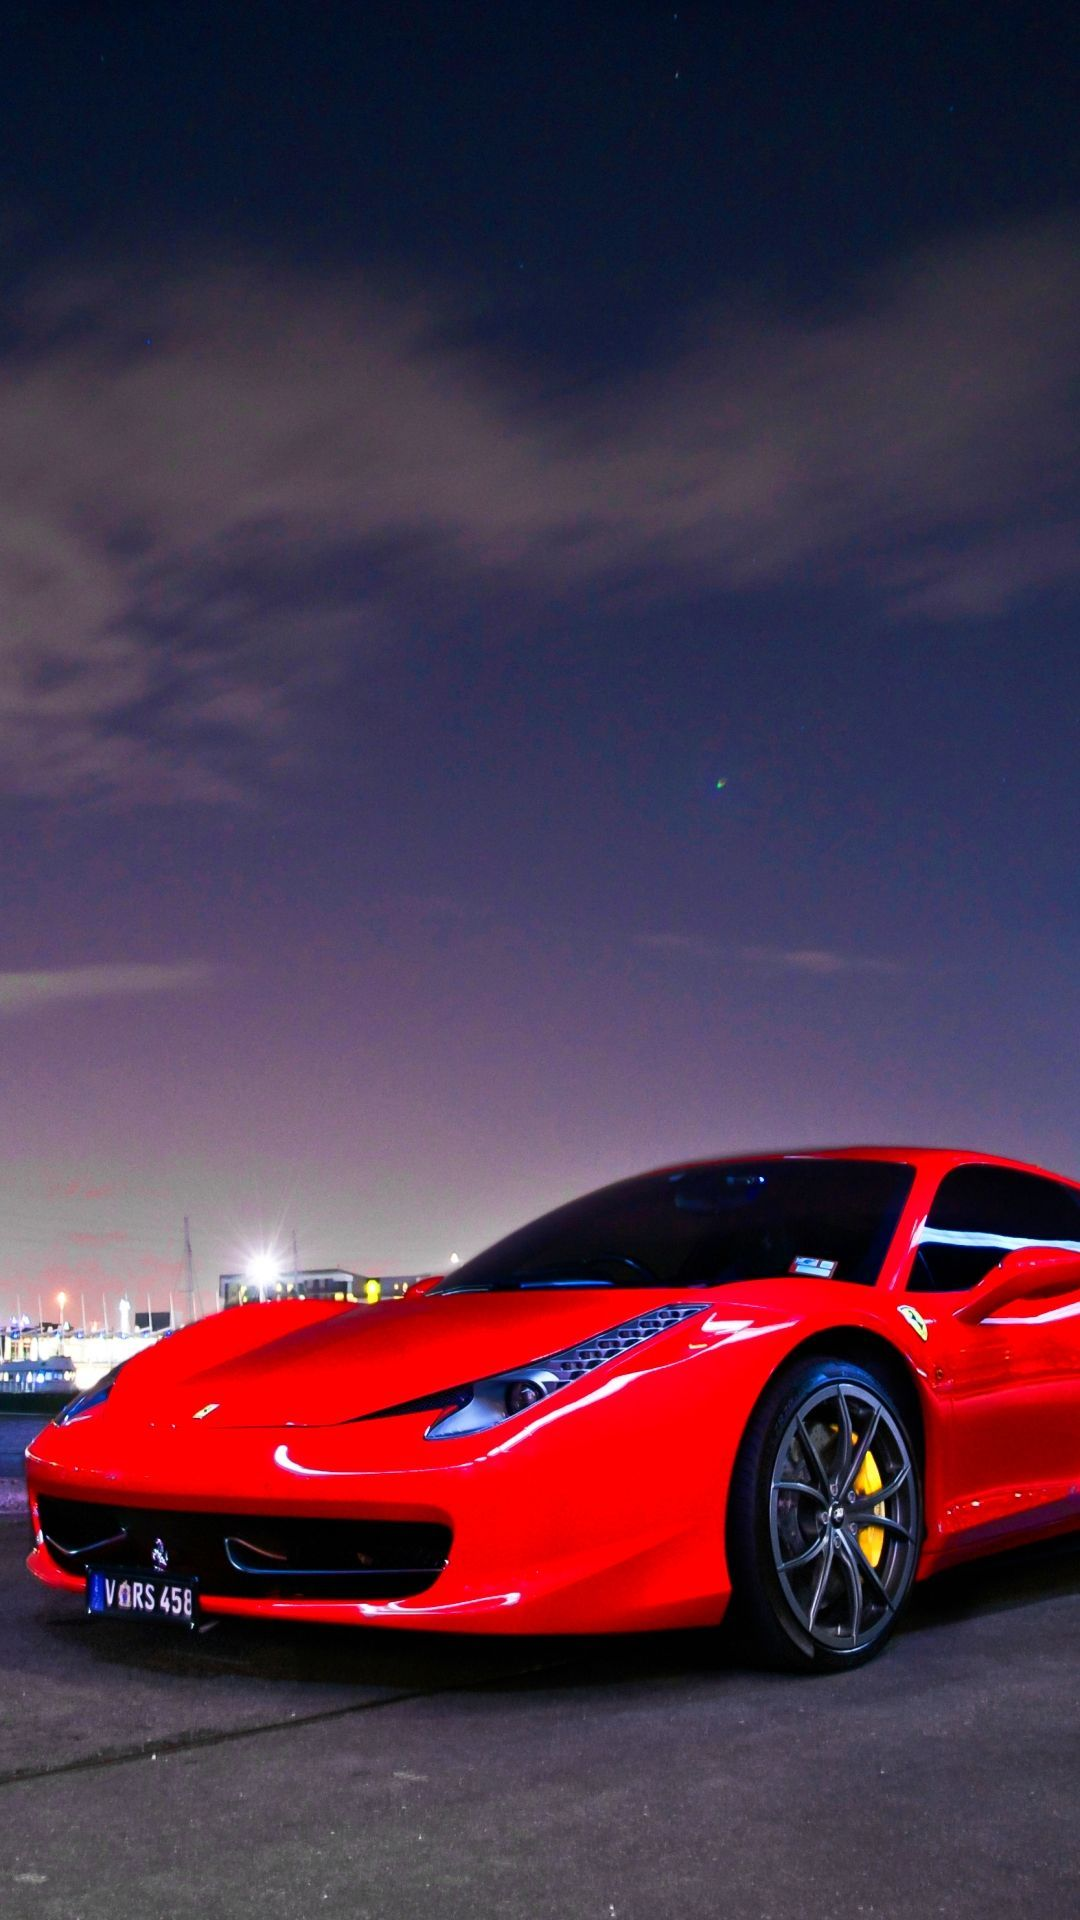 Iphone 6 Red Ferrari Wallpaper